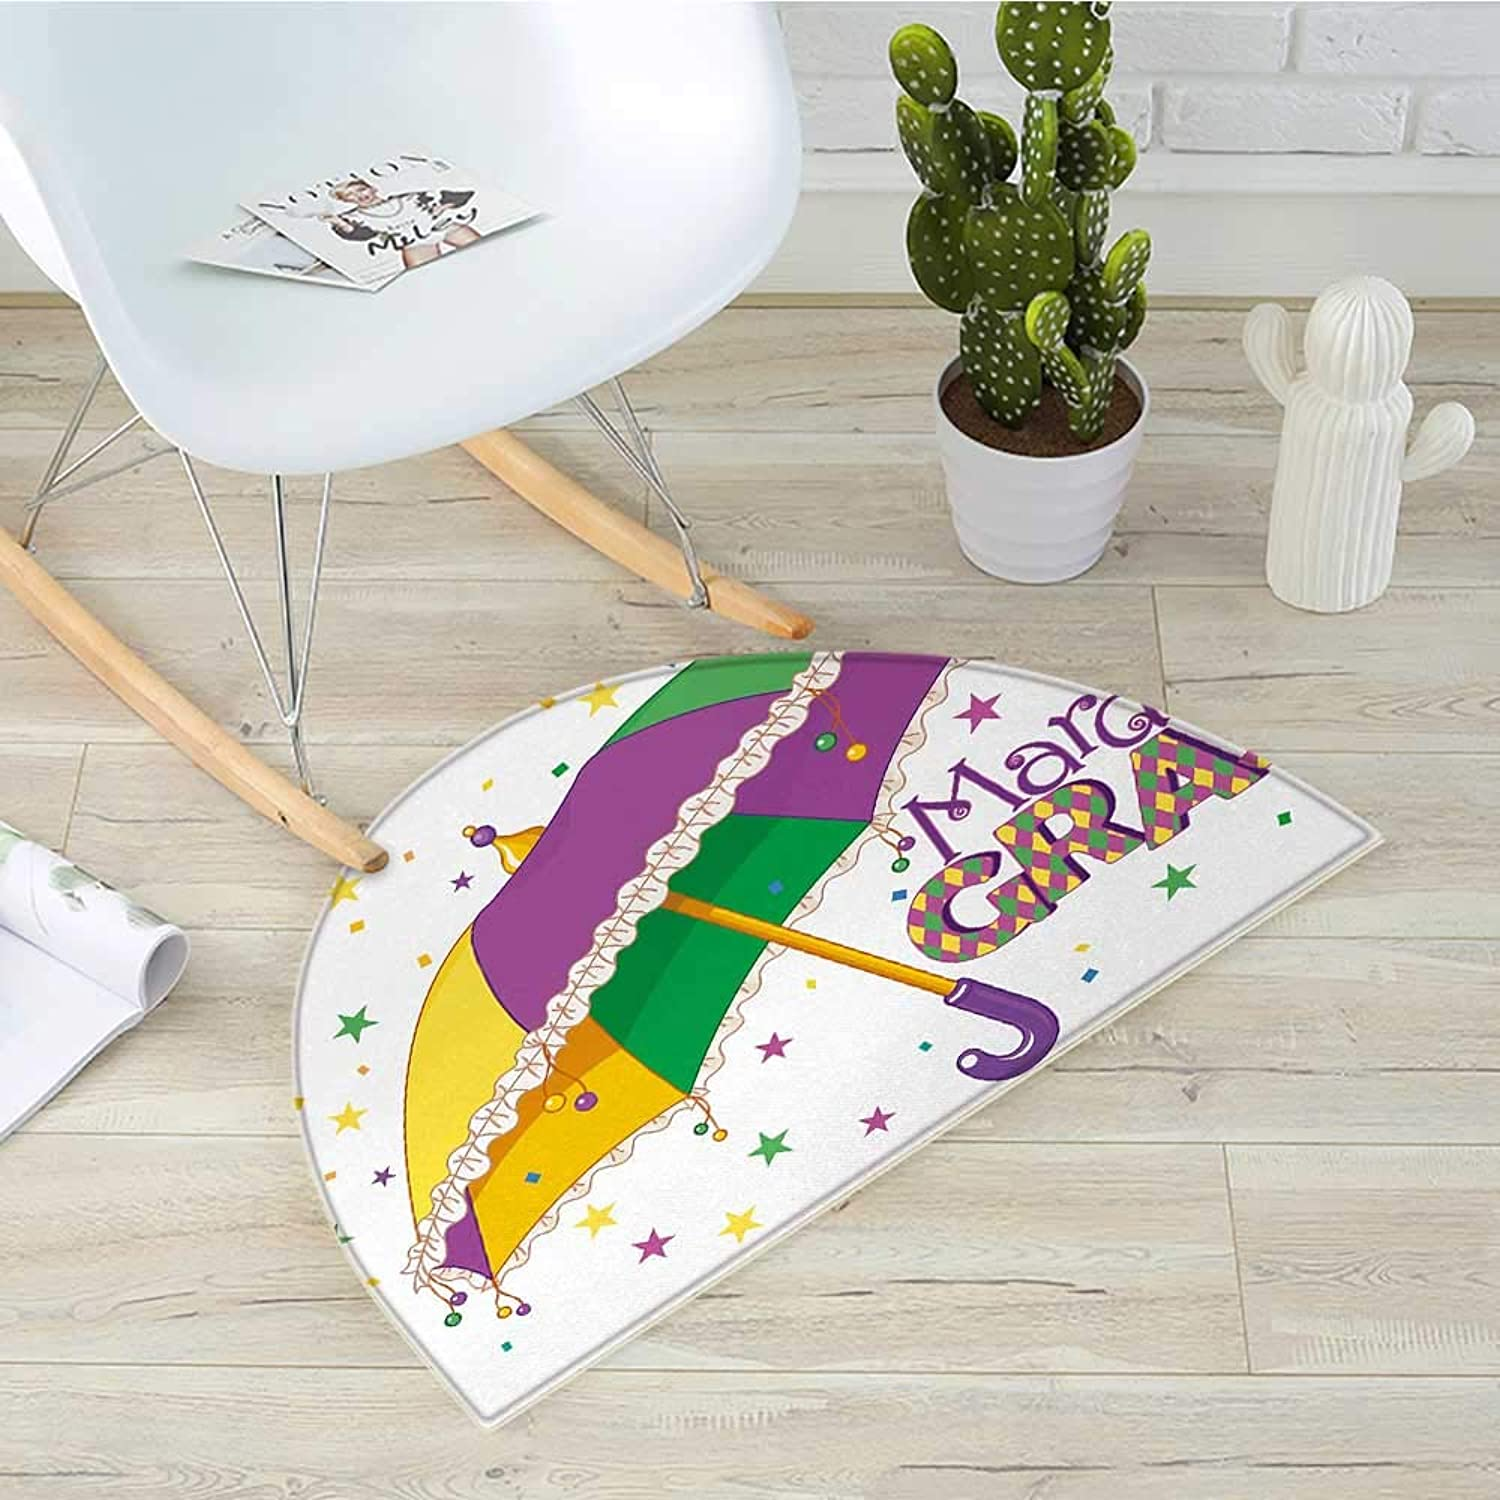 Mardi Gras Half Round Door mats Parade Preparations Umbrella Stars Confetti Figures Joyful Fun Party Bathroom Mat H 39.3  xD 59  Purple Yellow Green